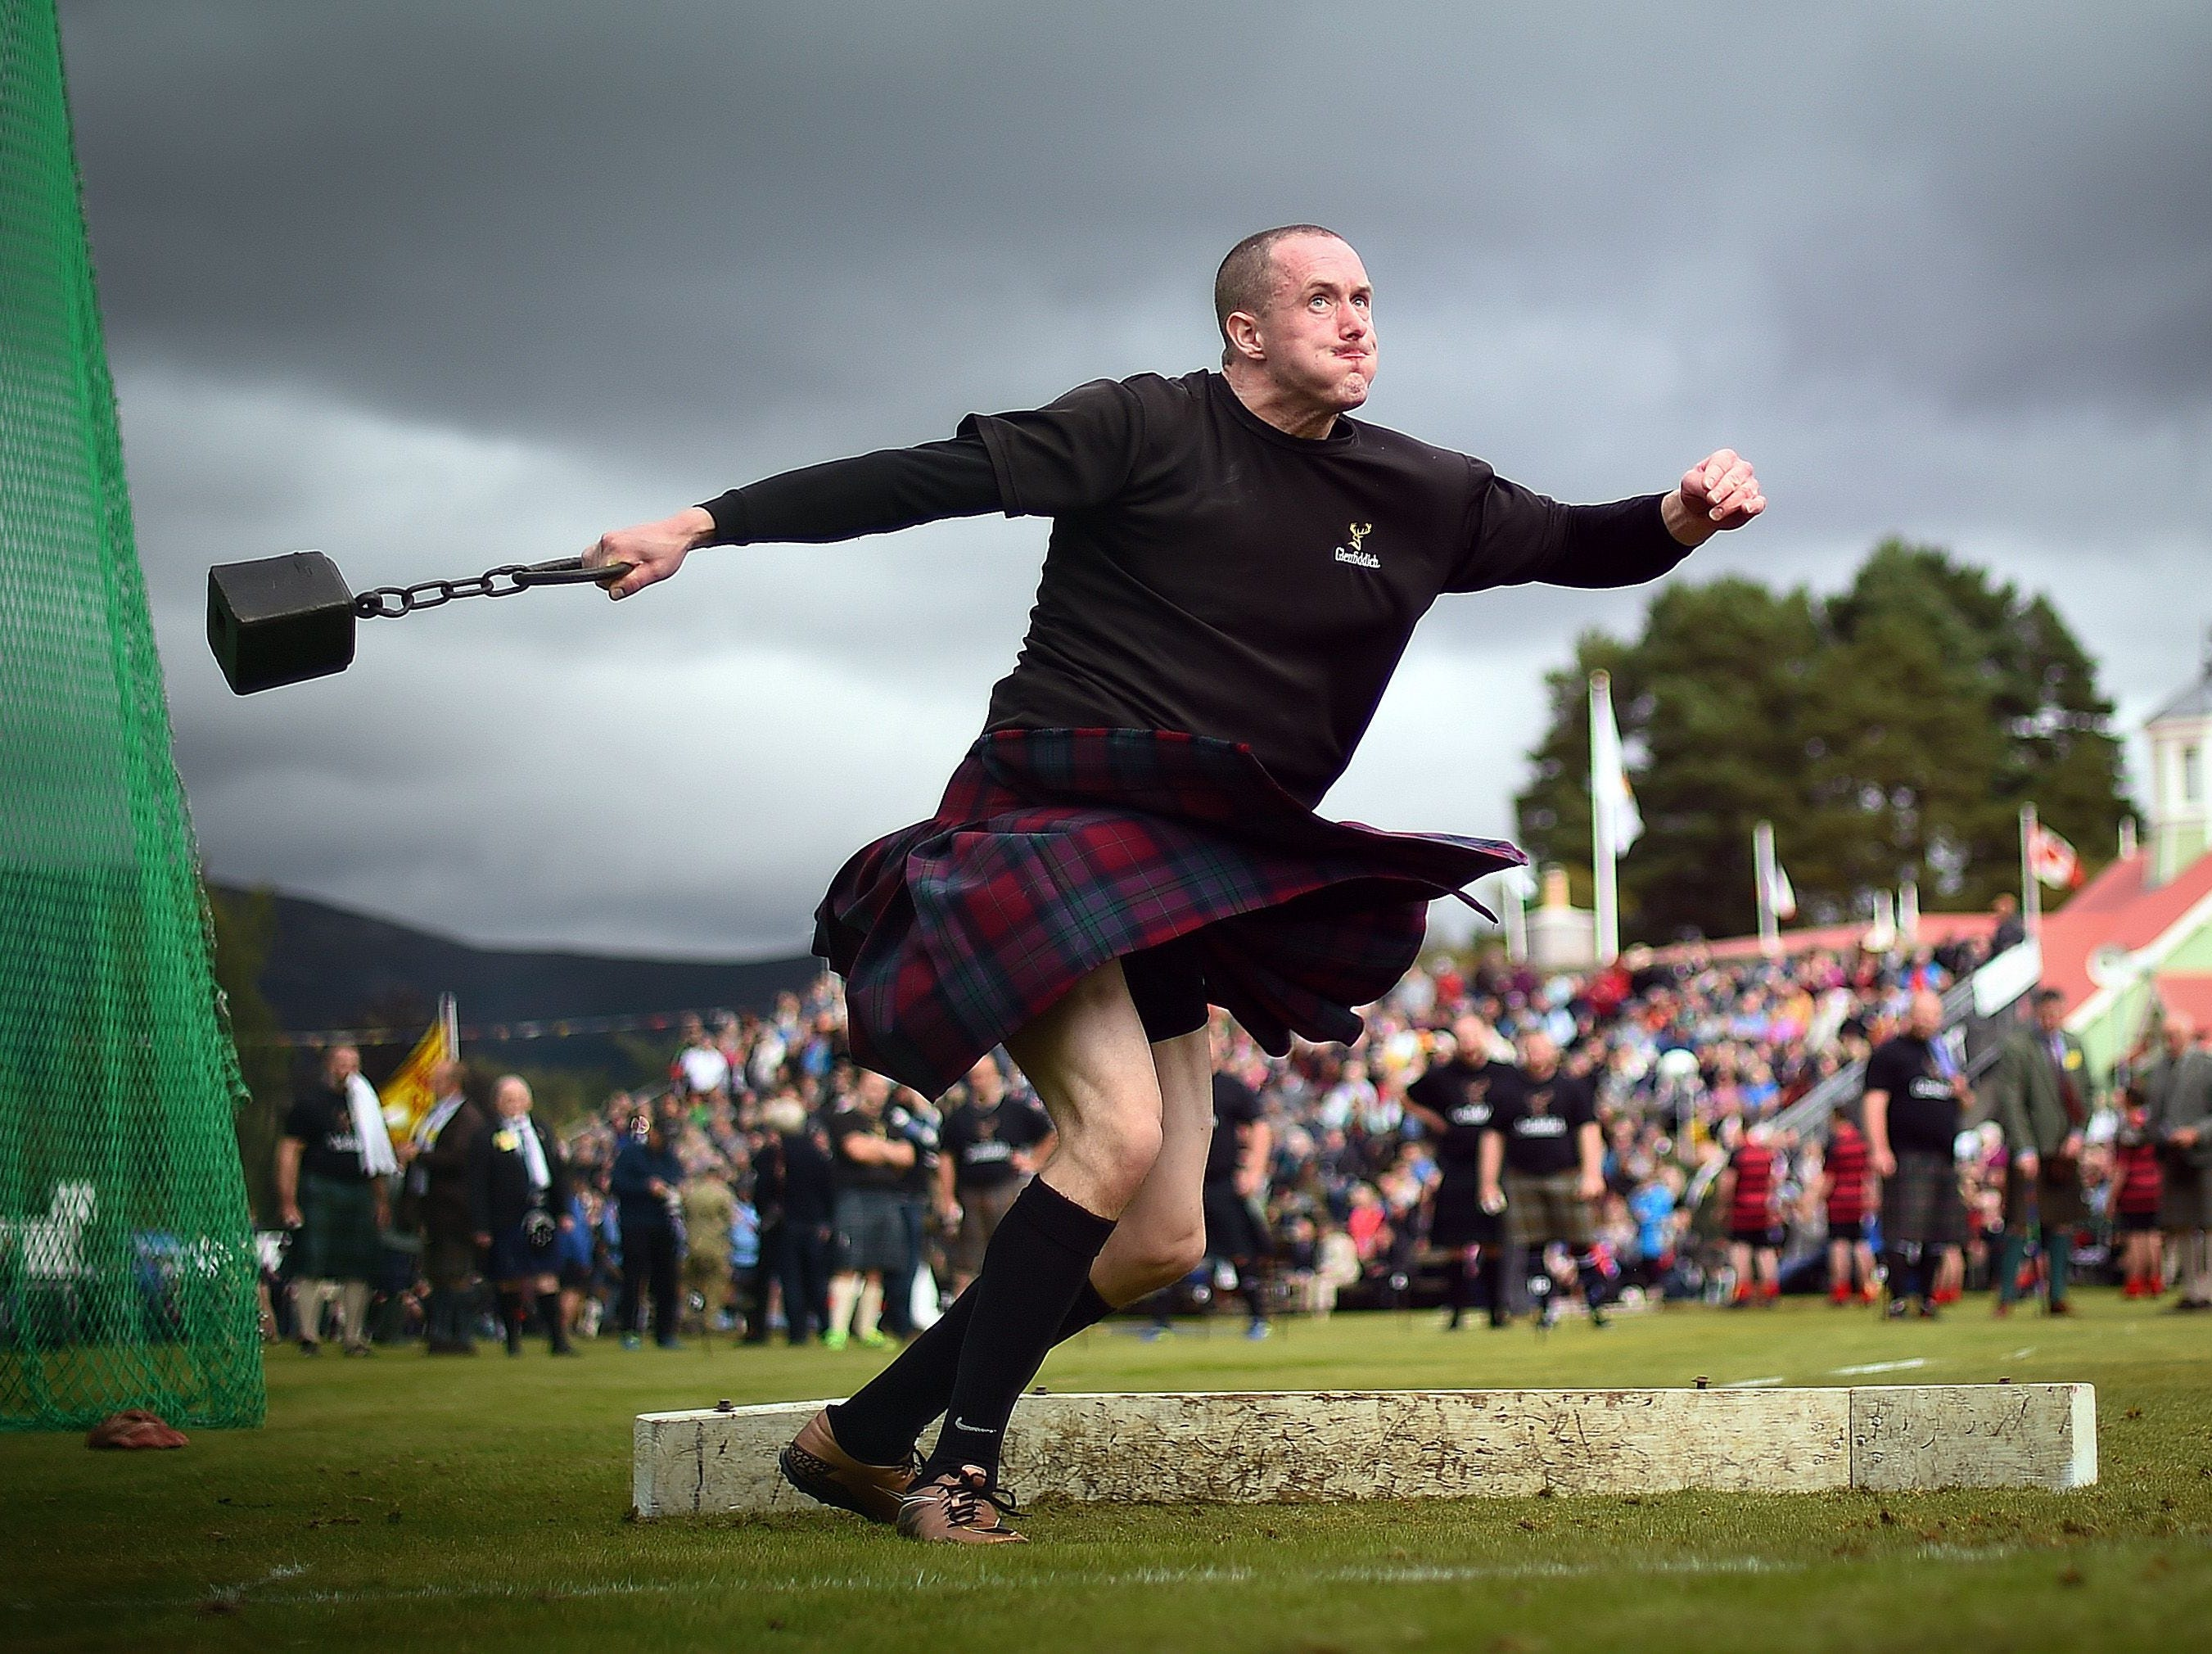 A competitor takes part in the Hammer Throw event at the annual Braemar Gathering in Braemar, central Scotland, on Sept. 1, 2018. The Braemar Gathering is a traditional Scottish Highland Games which predates the 1745 Uprising, and since 1848 it has been regularly attended by the reigning Monarch Queen Elizabeth and members of the Royal Family.